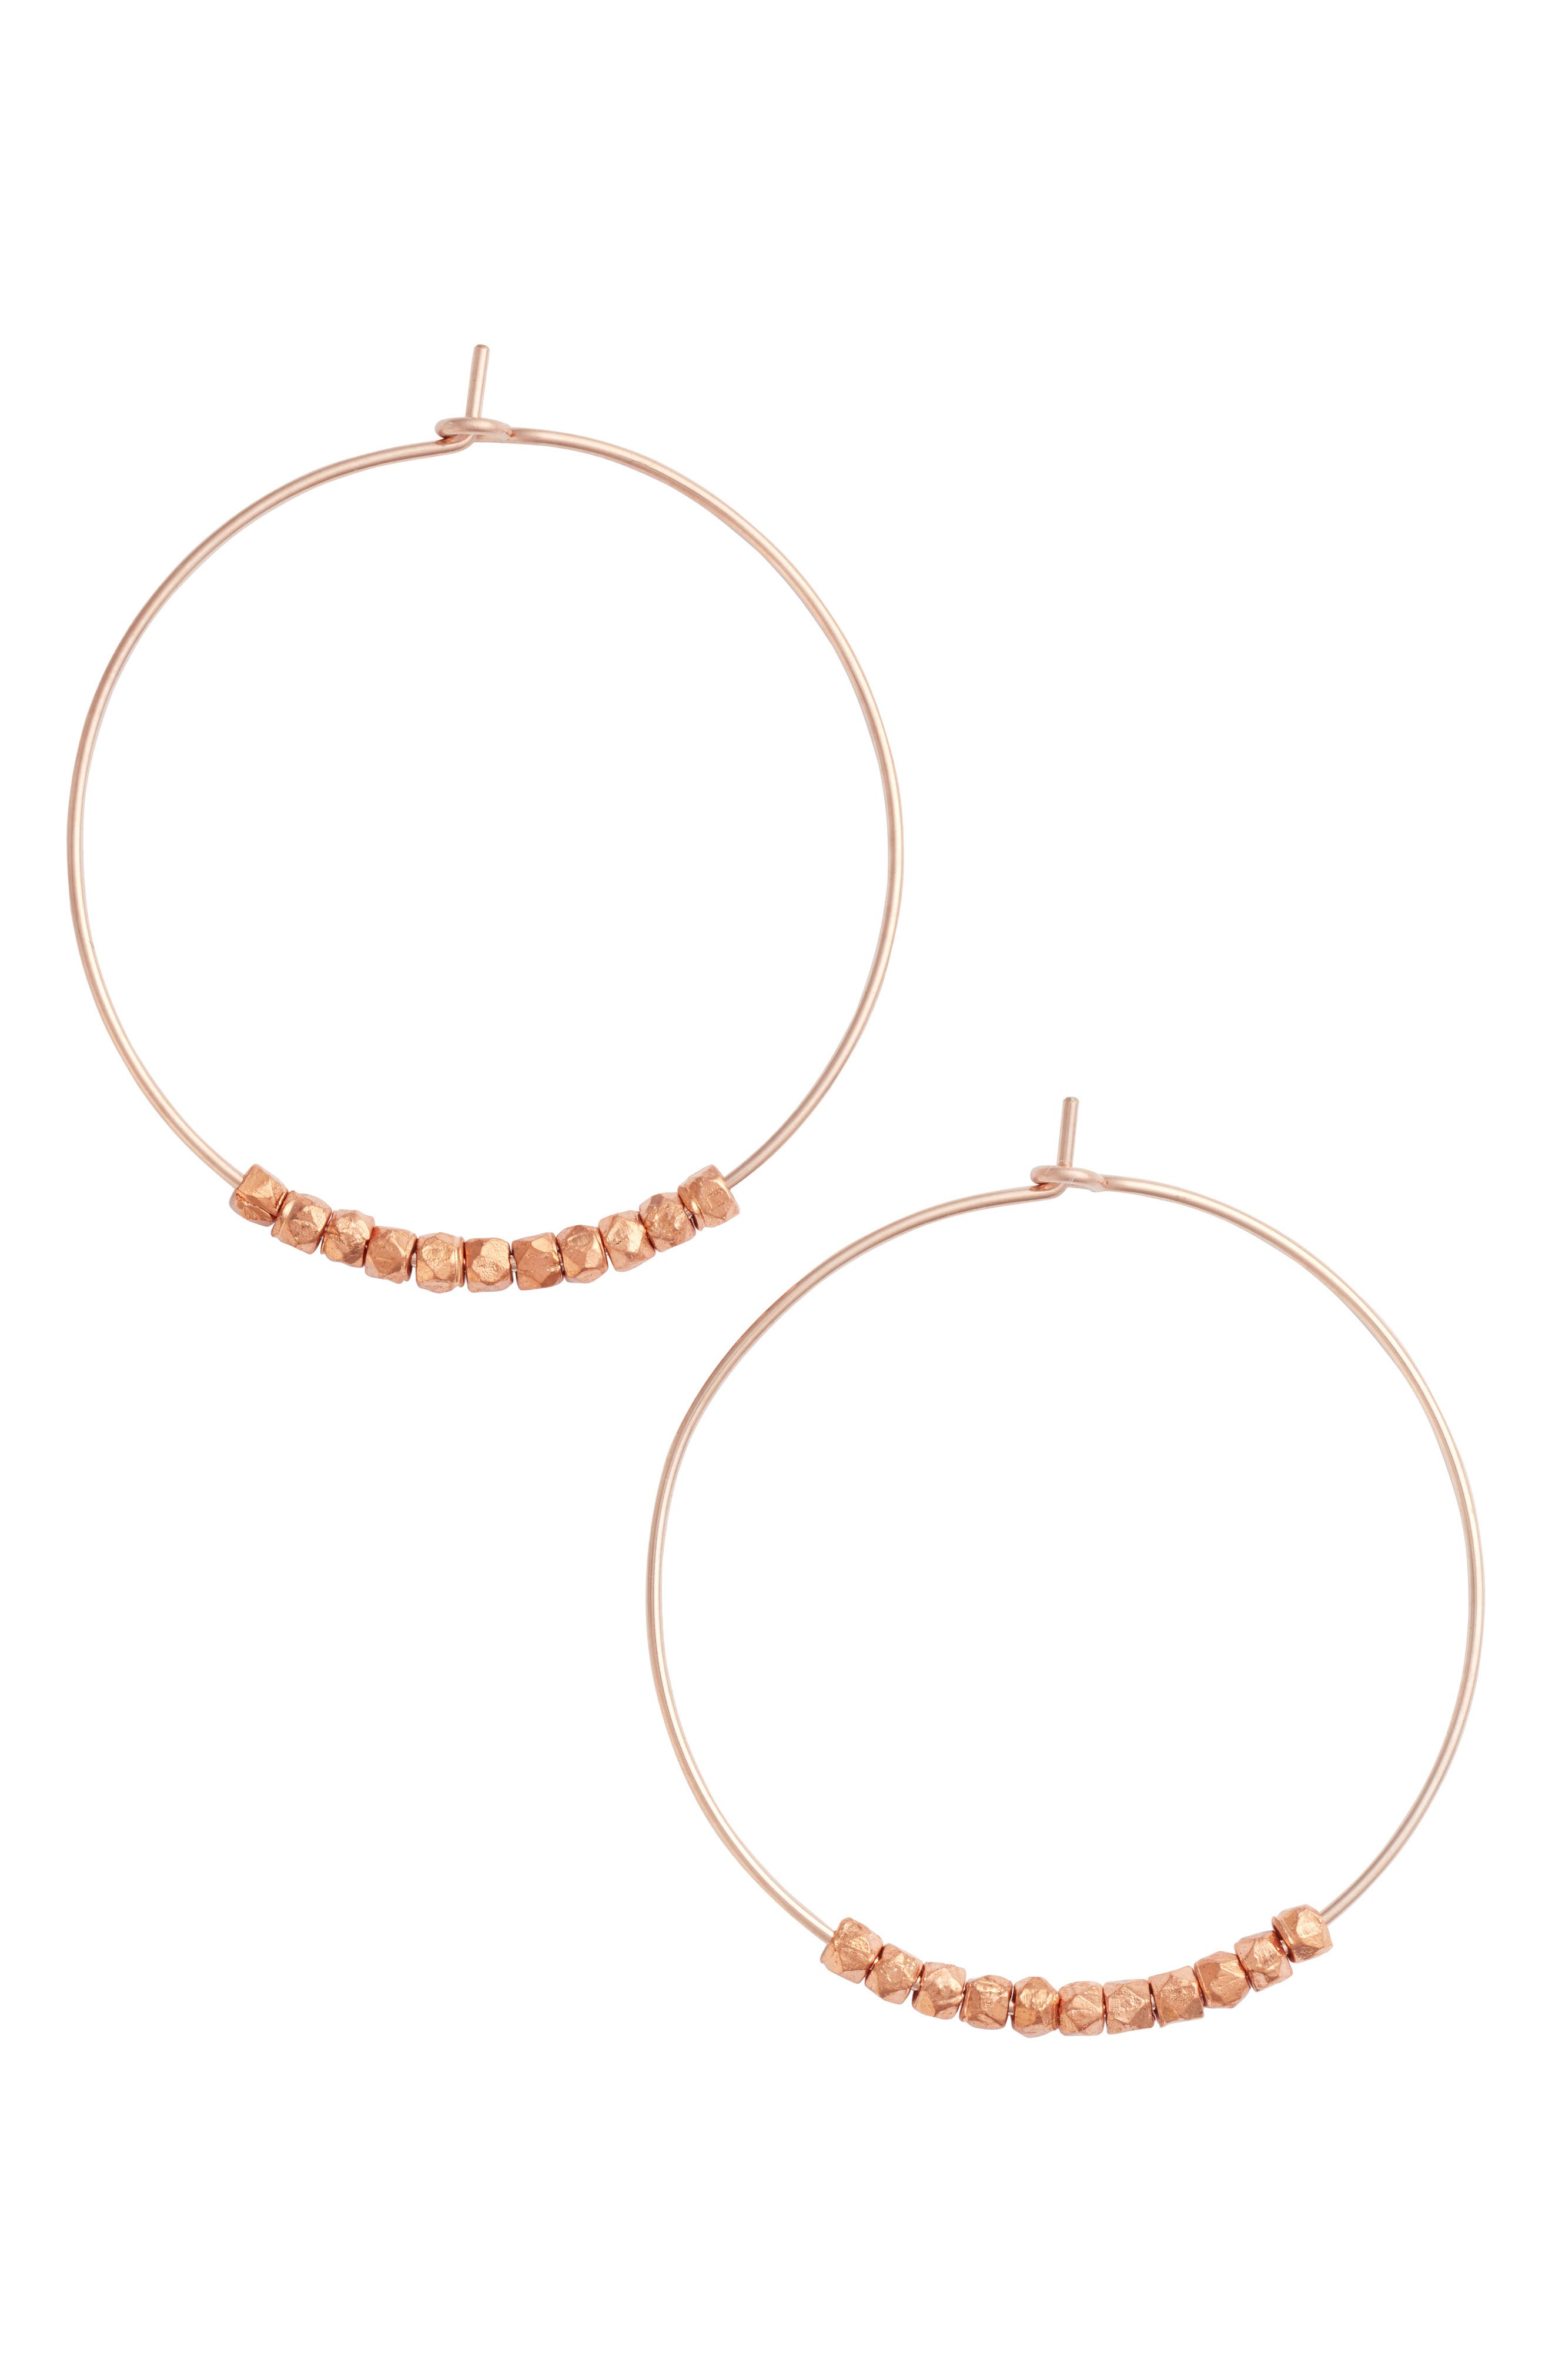 Nashelle Karly Glistening Hoop Earrings